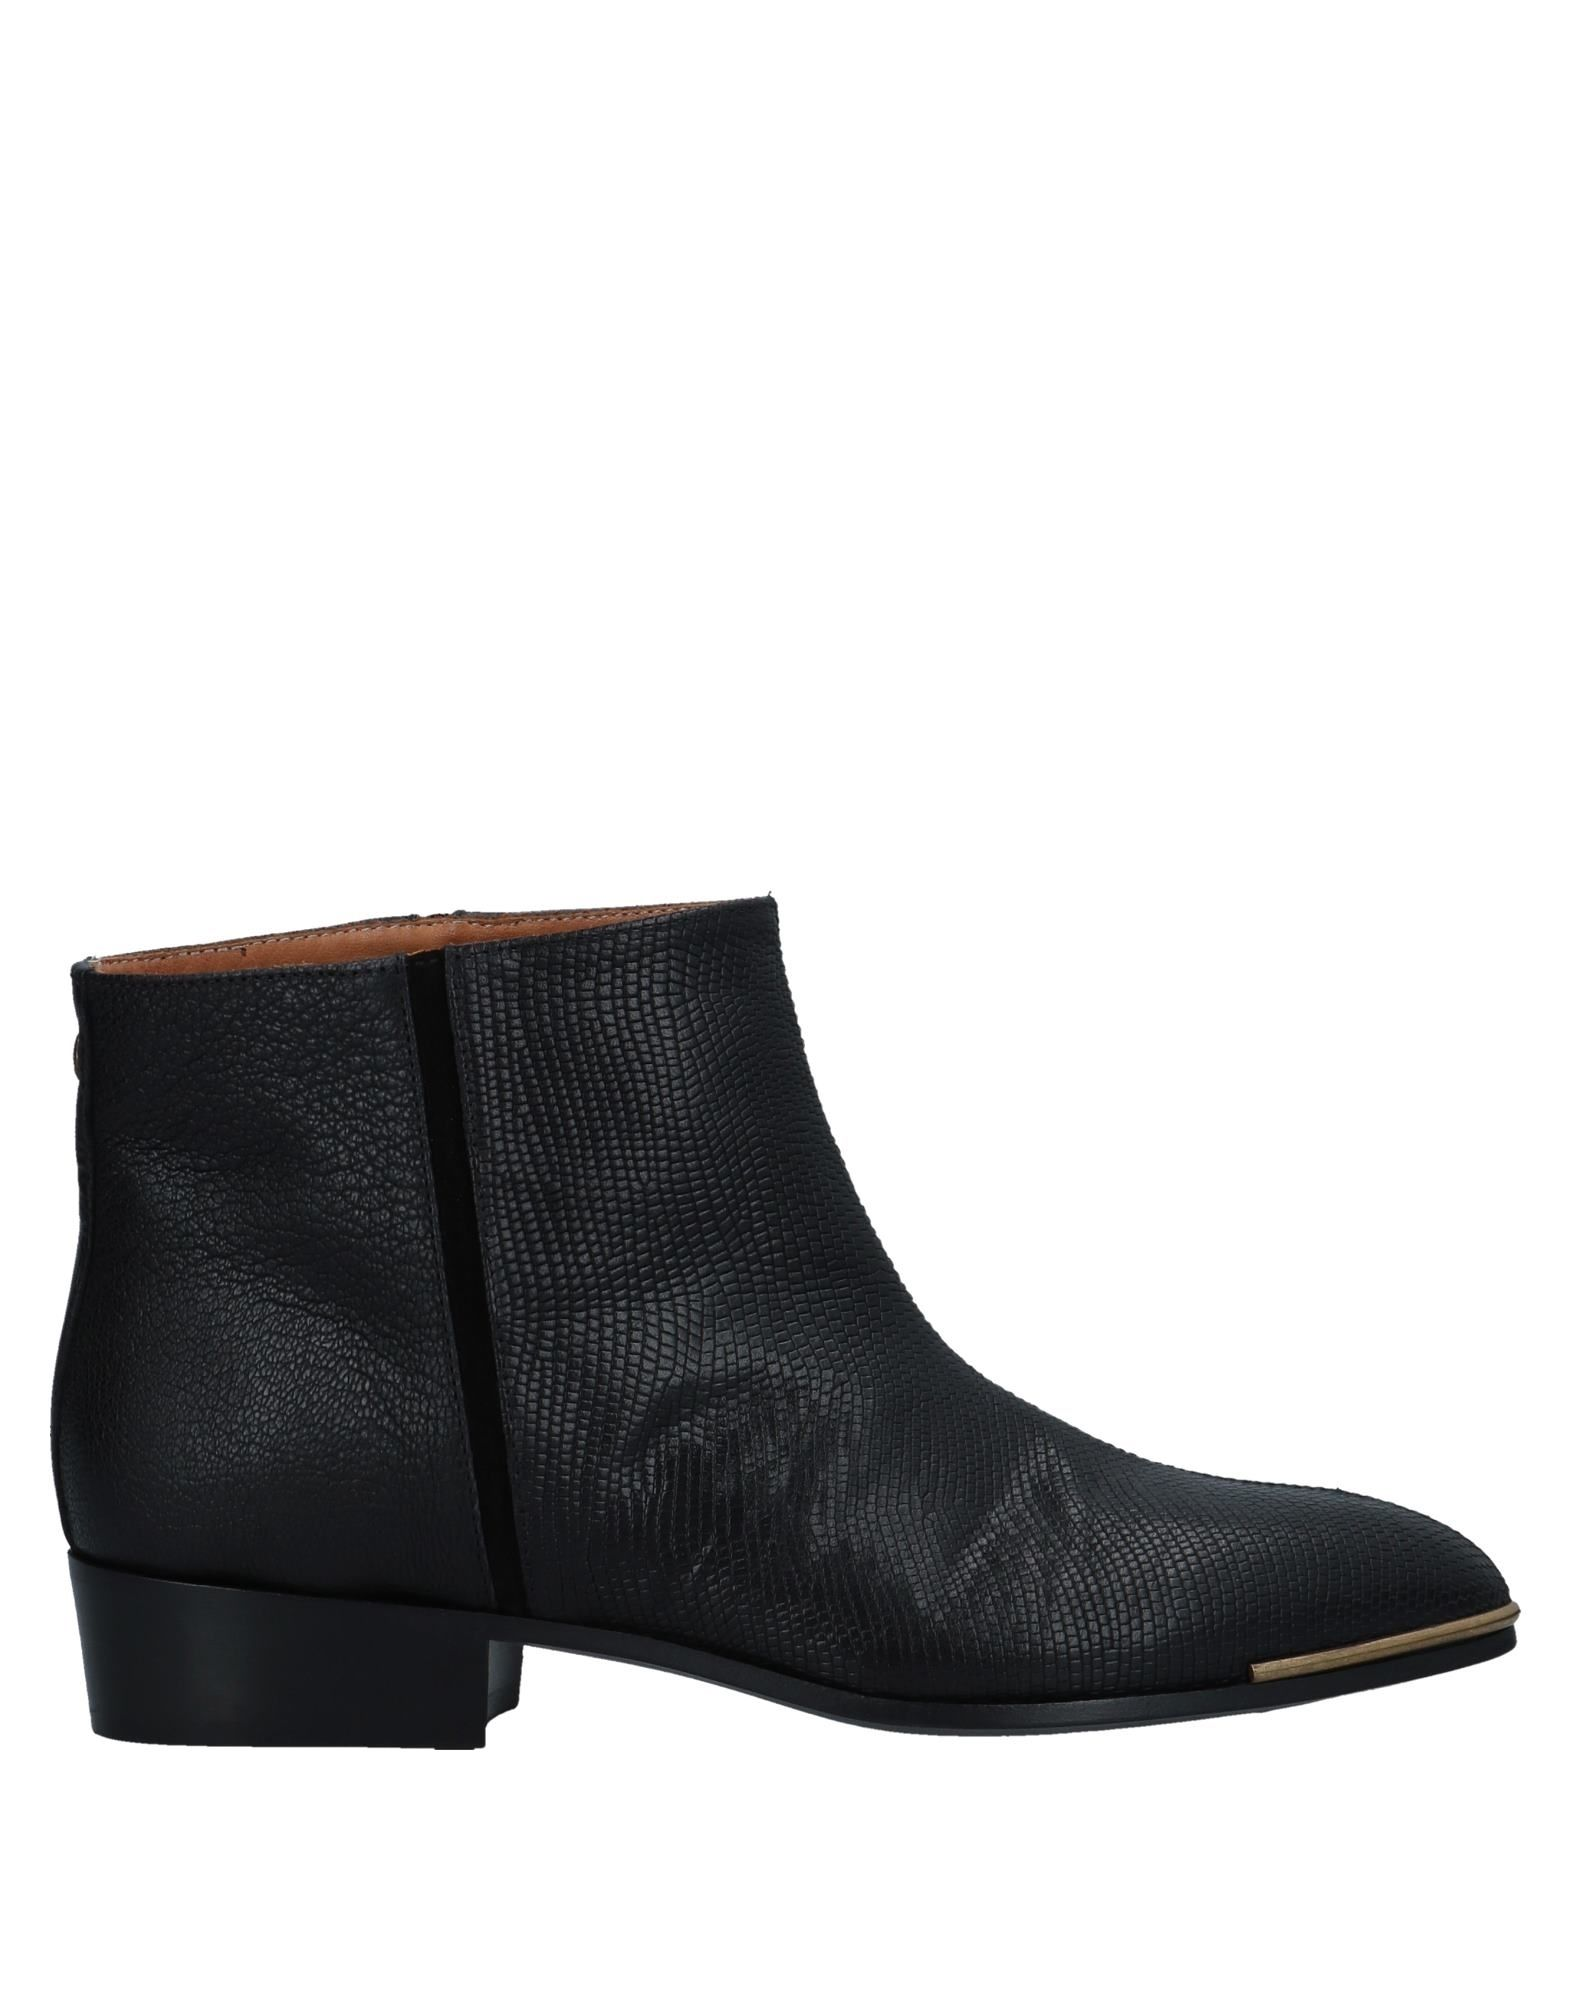 Buttero® Ankle Boot Boots - Women Buttero® Ankle Boots Boot online on  Australia - 11548033KT c0af80